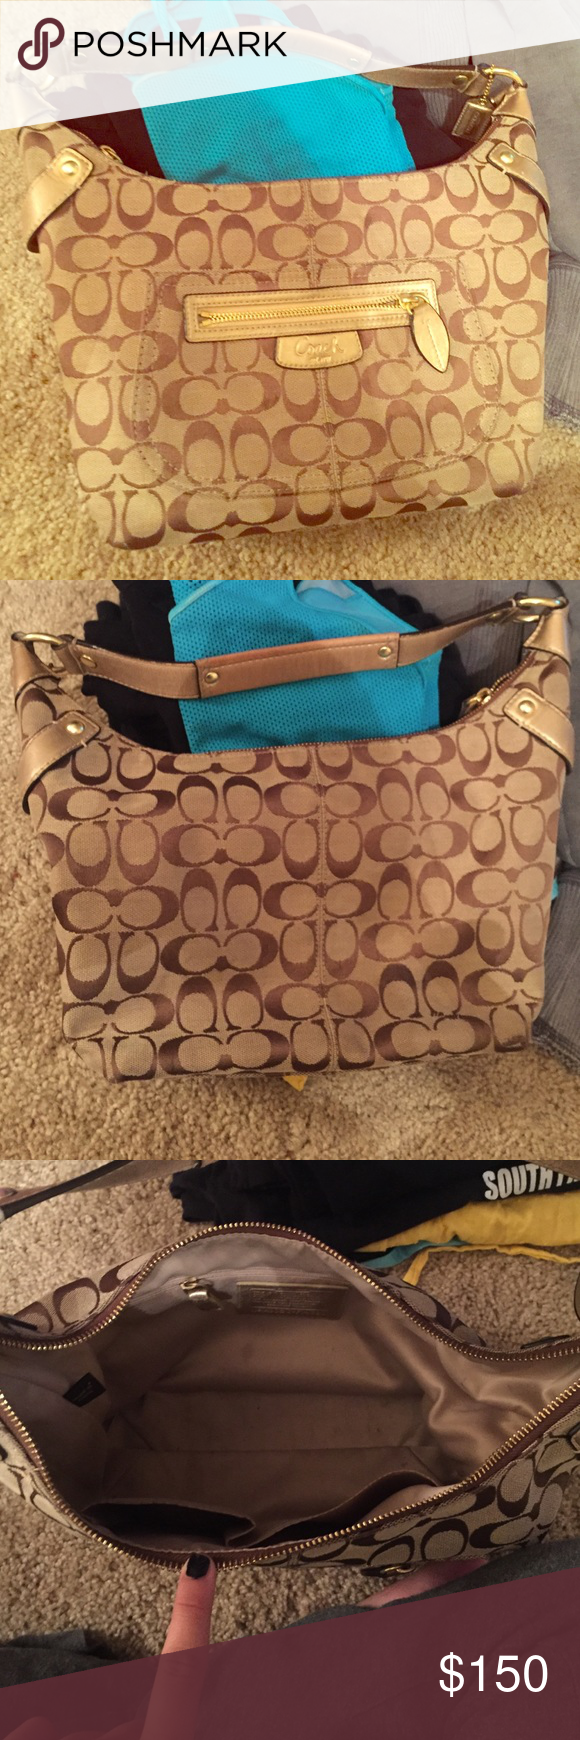 Coach Purse Well kept coach bag. Very clean hardly even used. Coach Bags Shoulder Bags